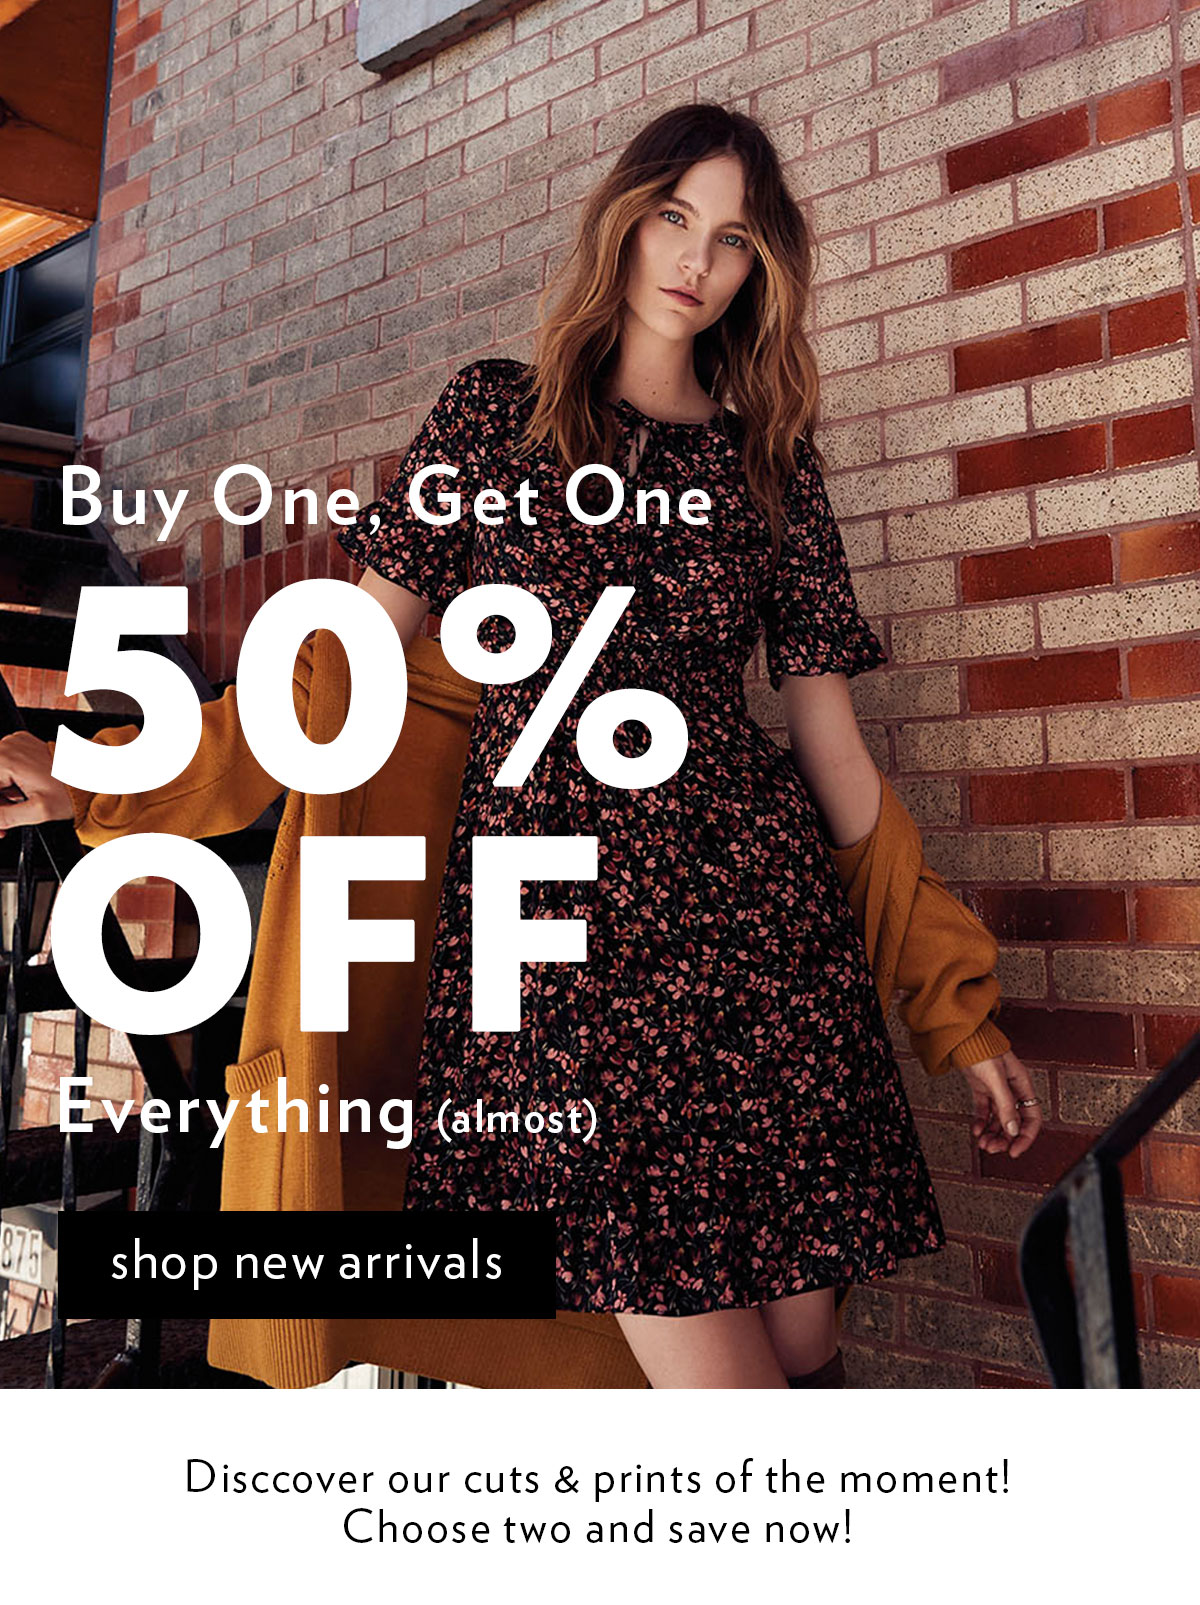 Bogo 50% off everything (almost)